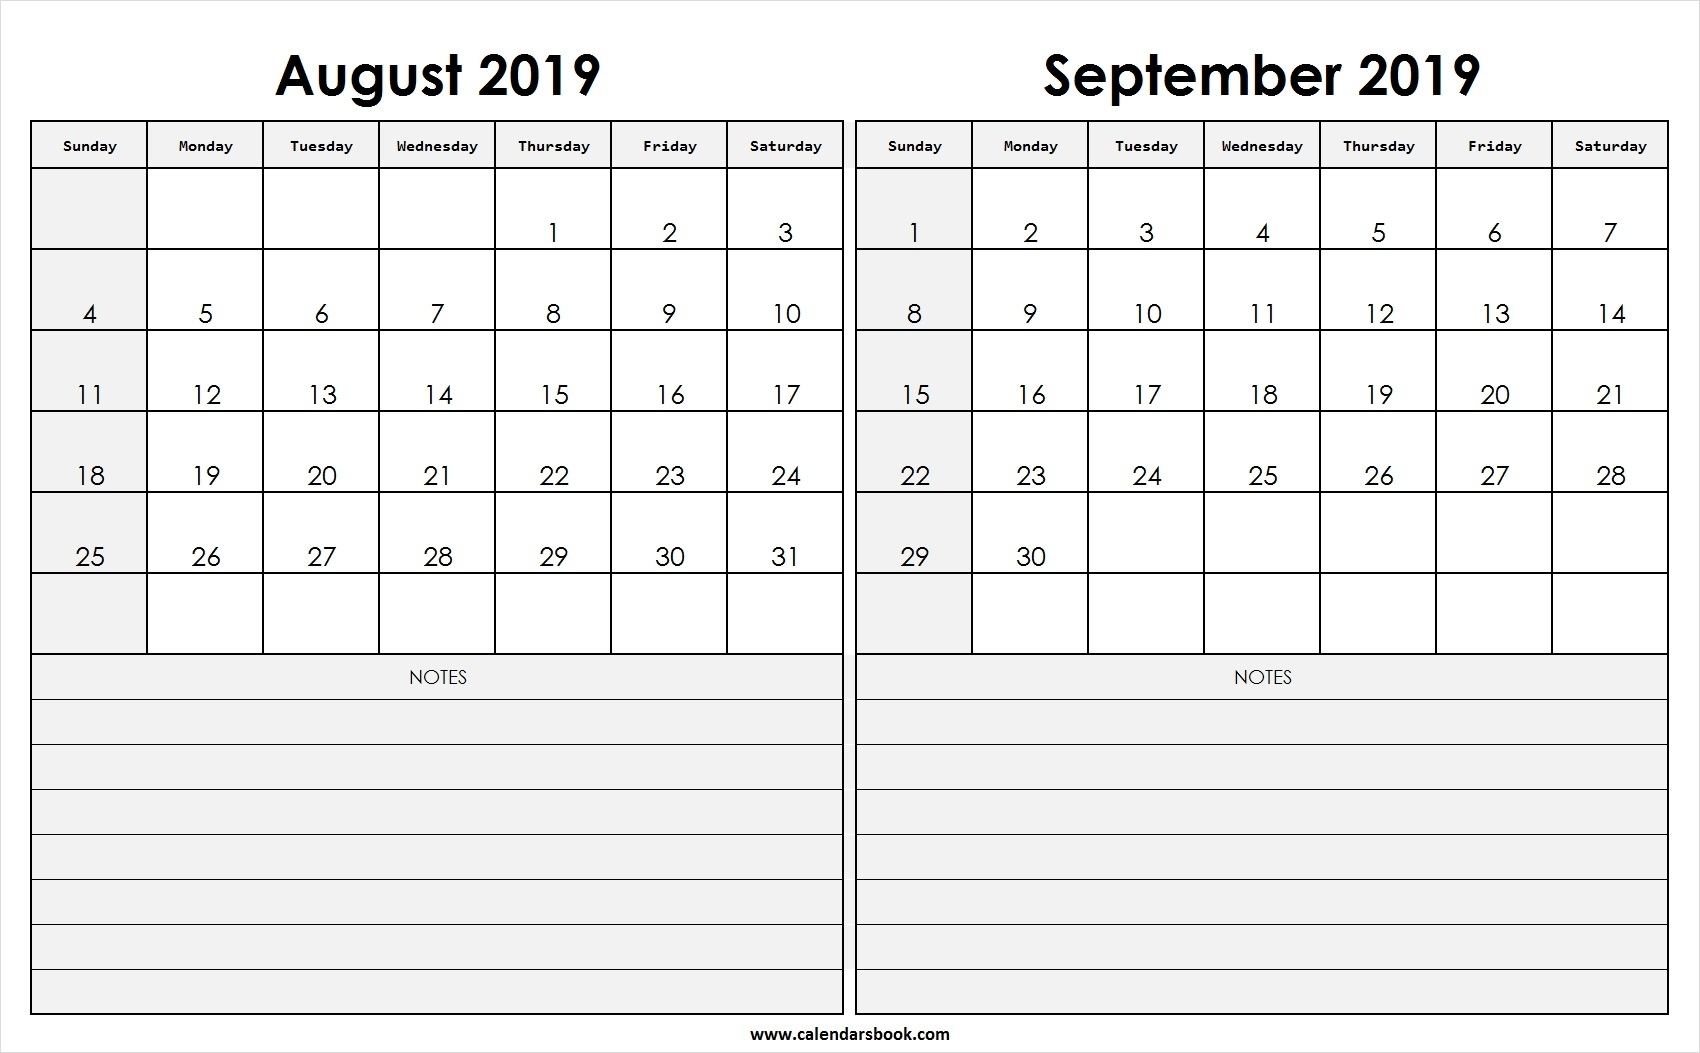 Print August September 2019 Calendar Template | 2 Month Calendar pertaining to August And Septmber Calendar Together